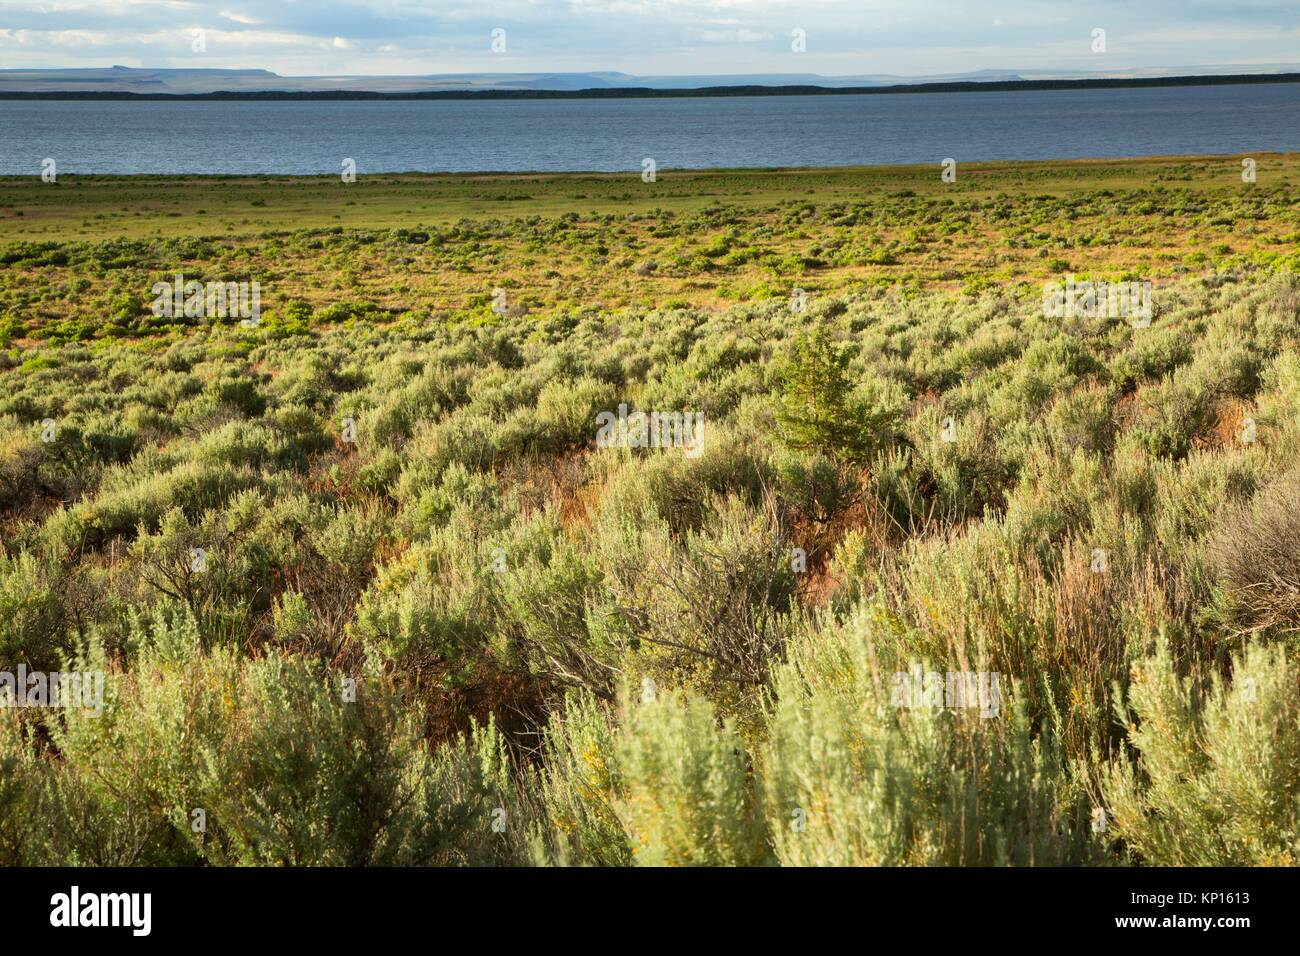 Sagebrush at Campbell Lake, Warner Wetlands Area of Critical Environmental Concern, Lakeview to Steens National - Stock Image